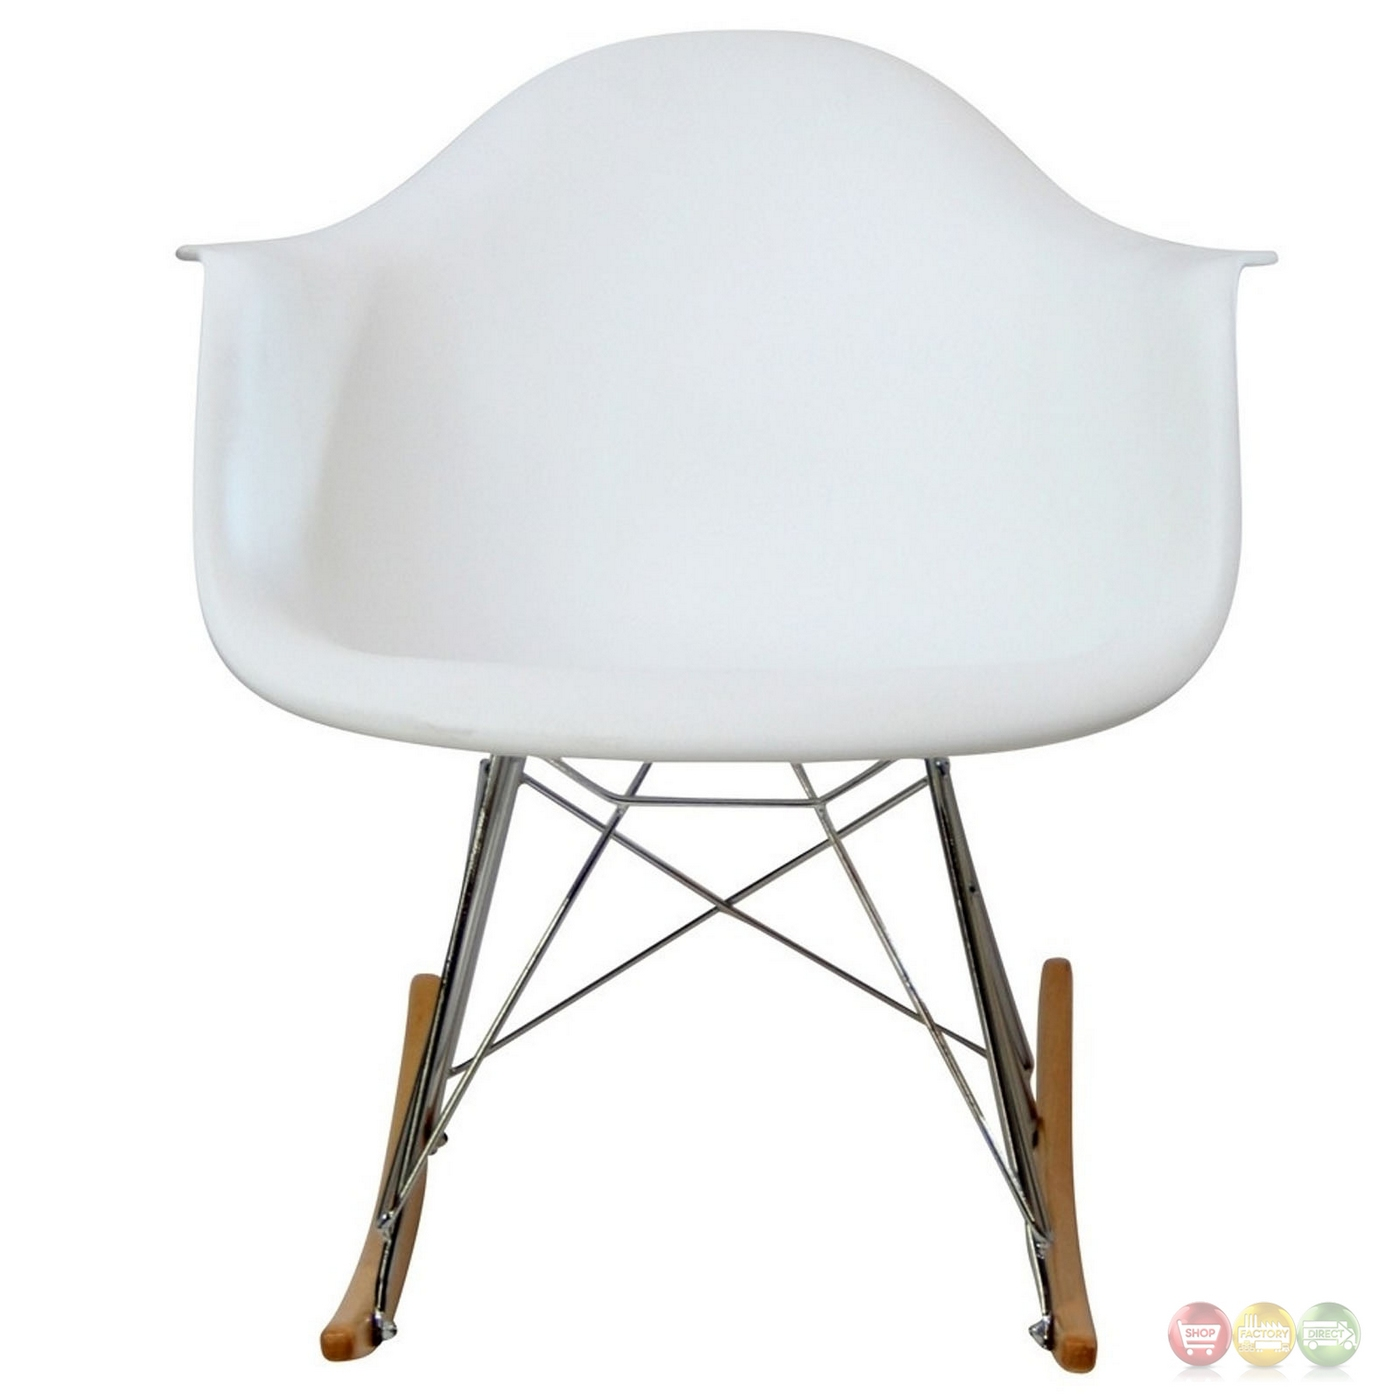 Rocker Molded Plastic Rocking Lounge Chair With Chrome & Wood Base White